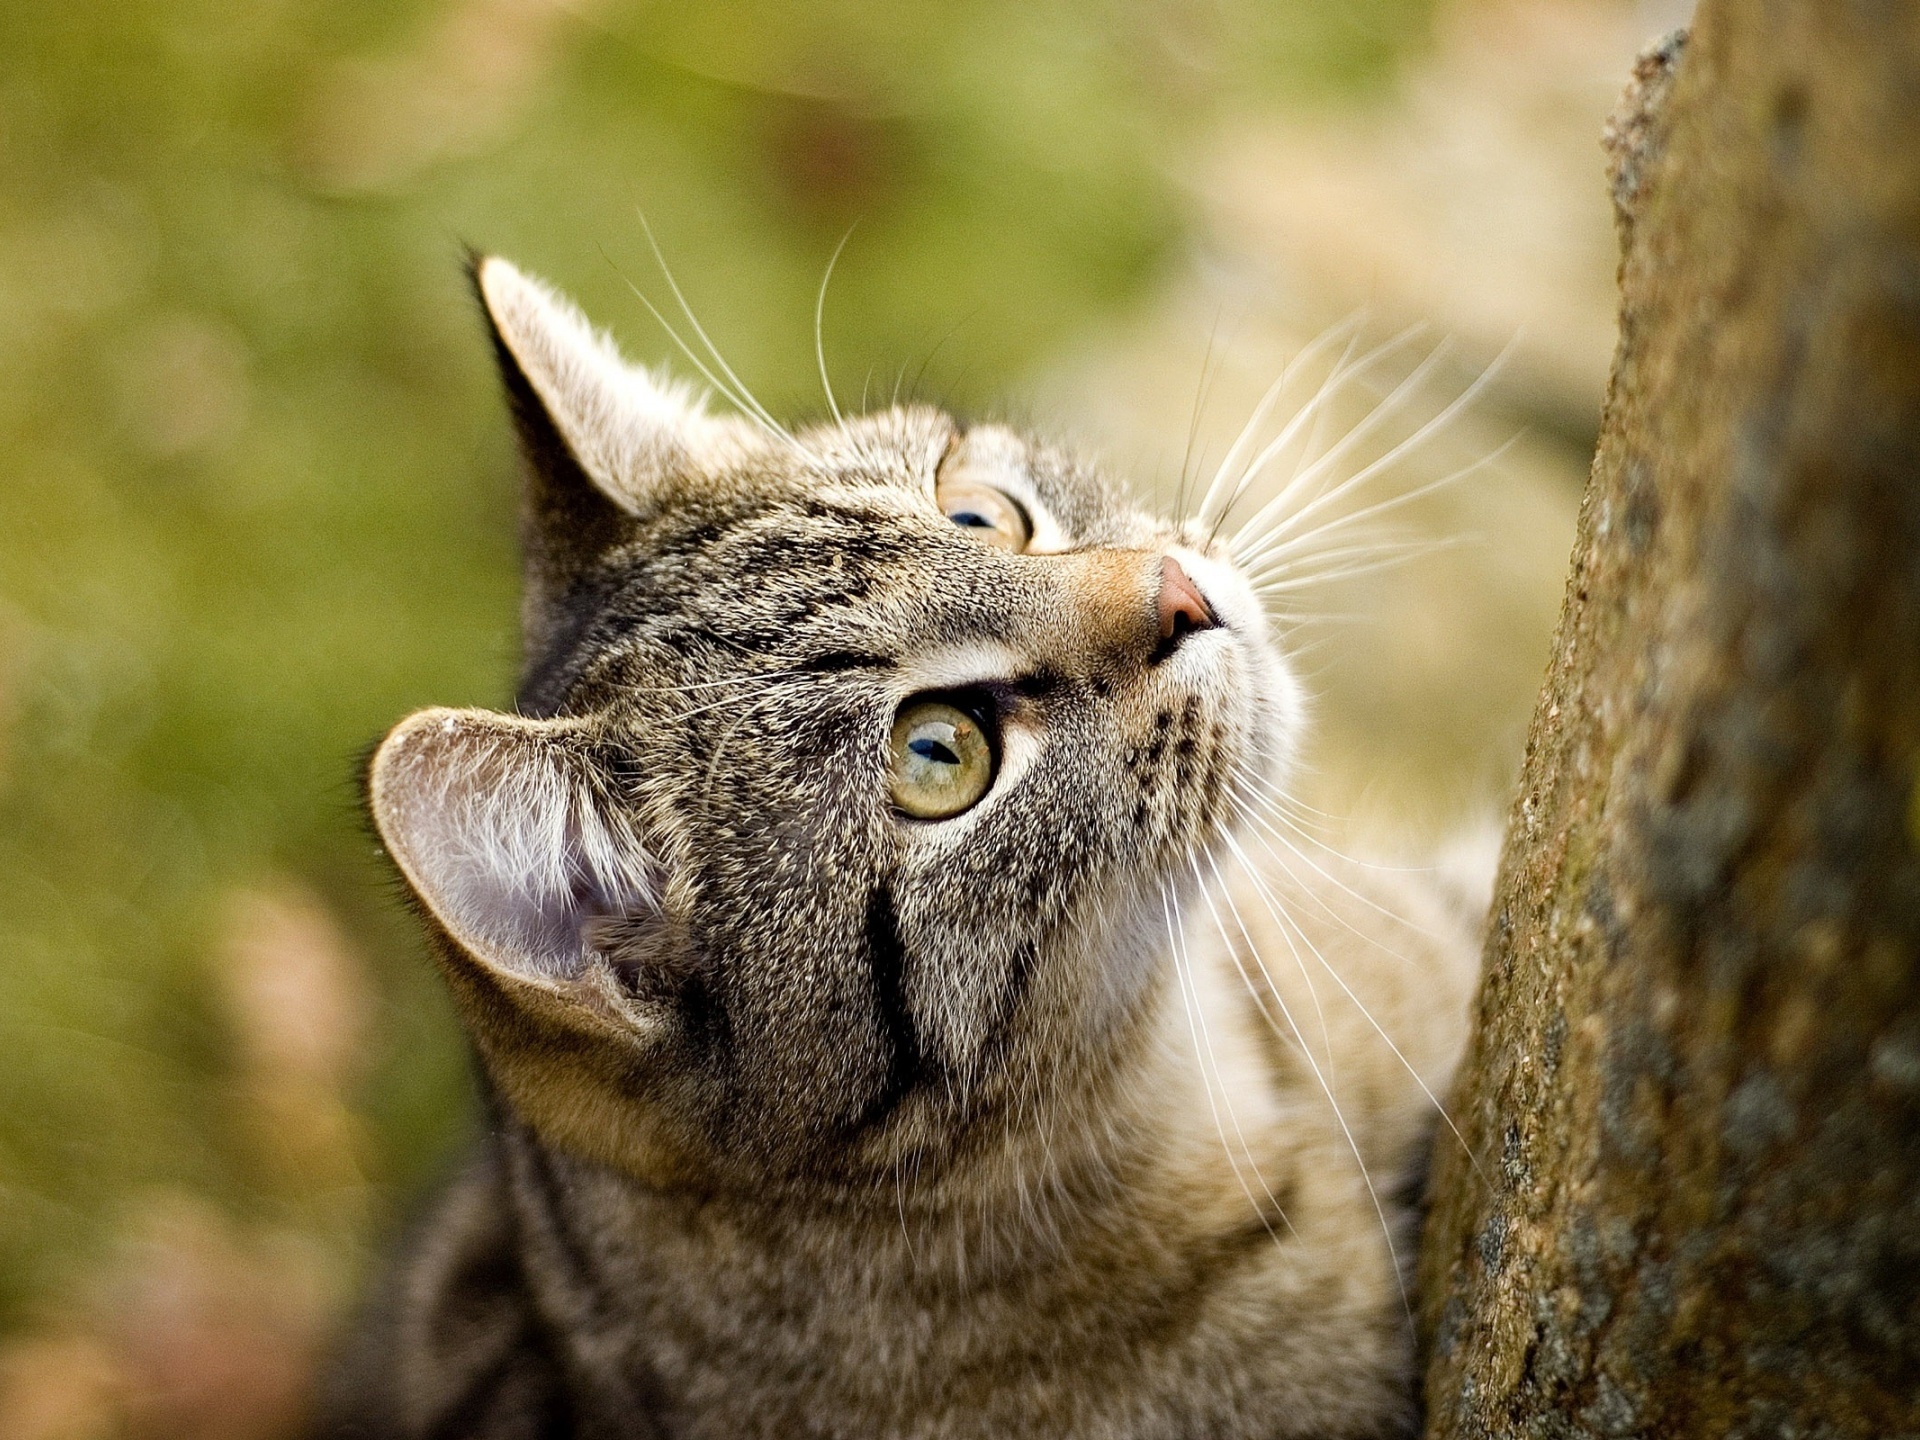 click to free download the wallpaper--Cute Animals Image, an Attentive Kitten by a Tree, Ready to Climb and Hunt 1920X1440 free wallpaper download